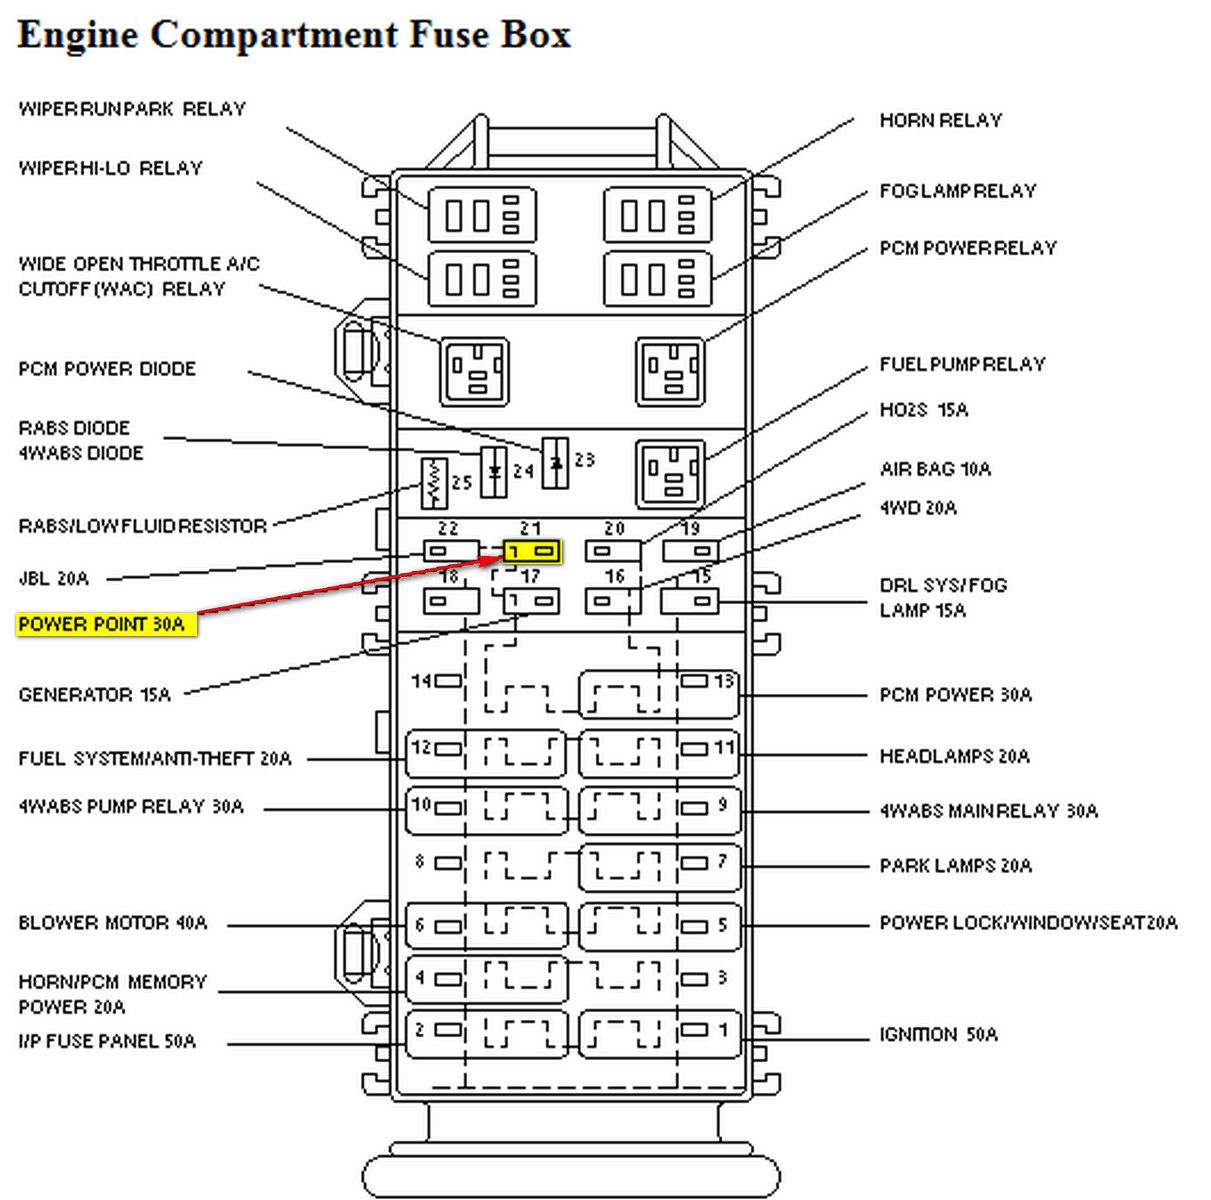 hight resolution of 2006 ford ranger fuse box diagram wiring diagram origin 1998 ford ranger fuse diagram 1997 ford